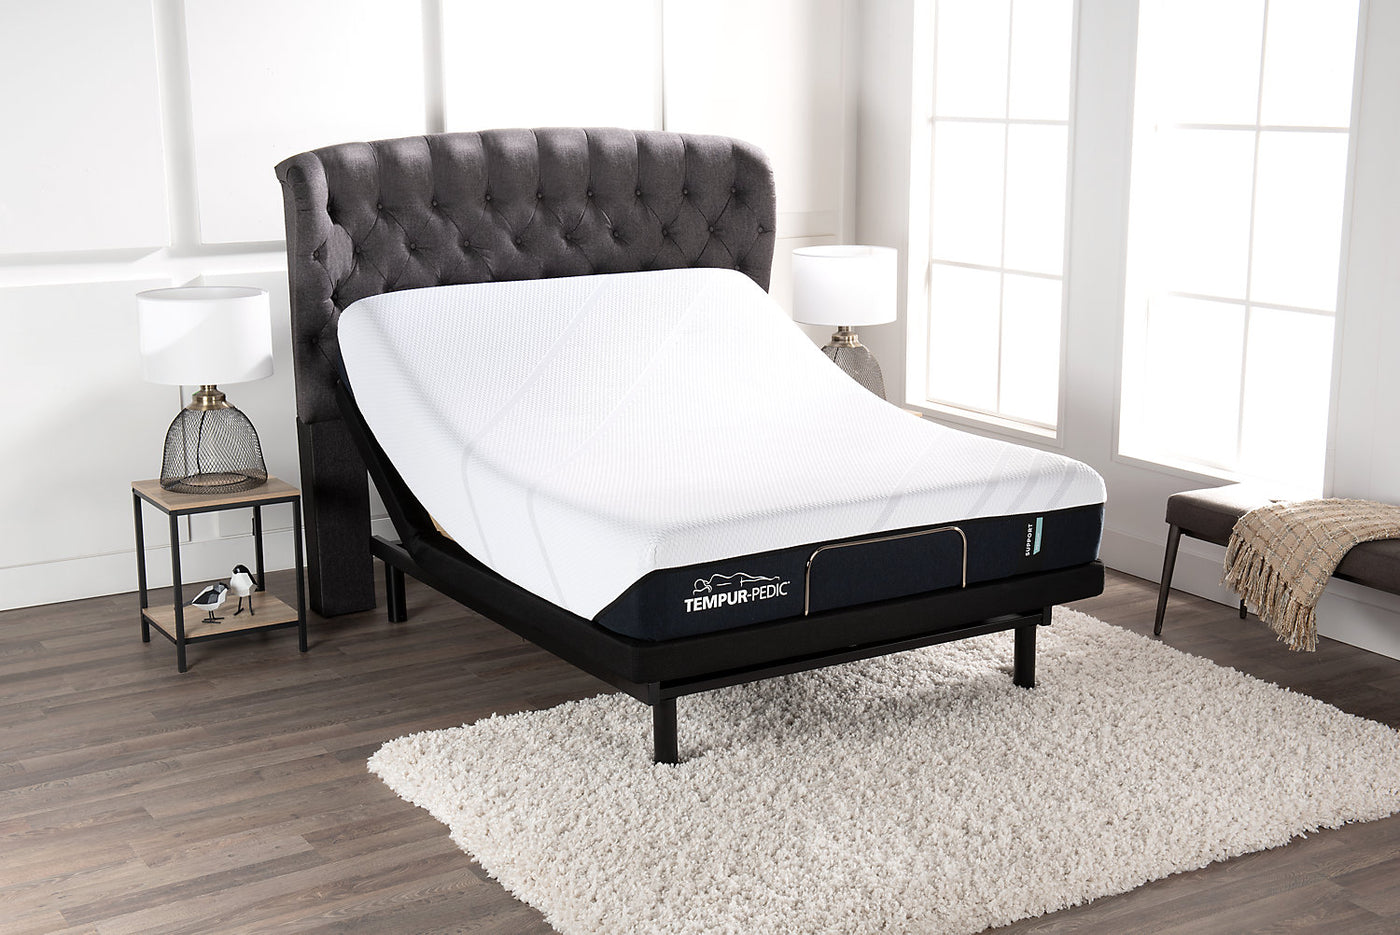 buy popular 2cbb1 4e494 Tempur-Pedic Support Medium Queen Mattress with Reflexion by Sealy Lift  Adjustable Base